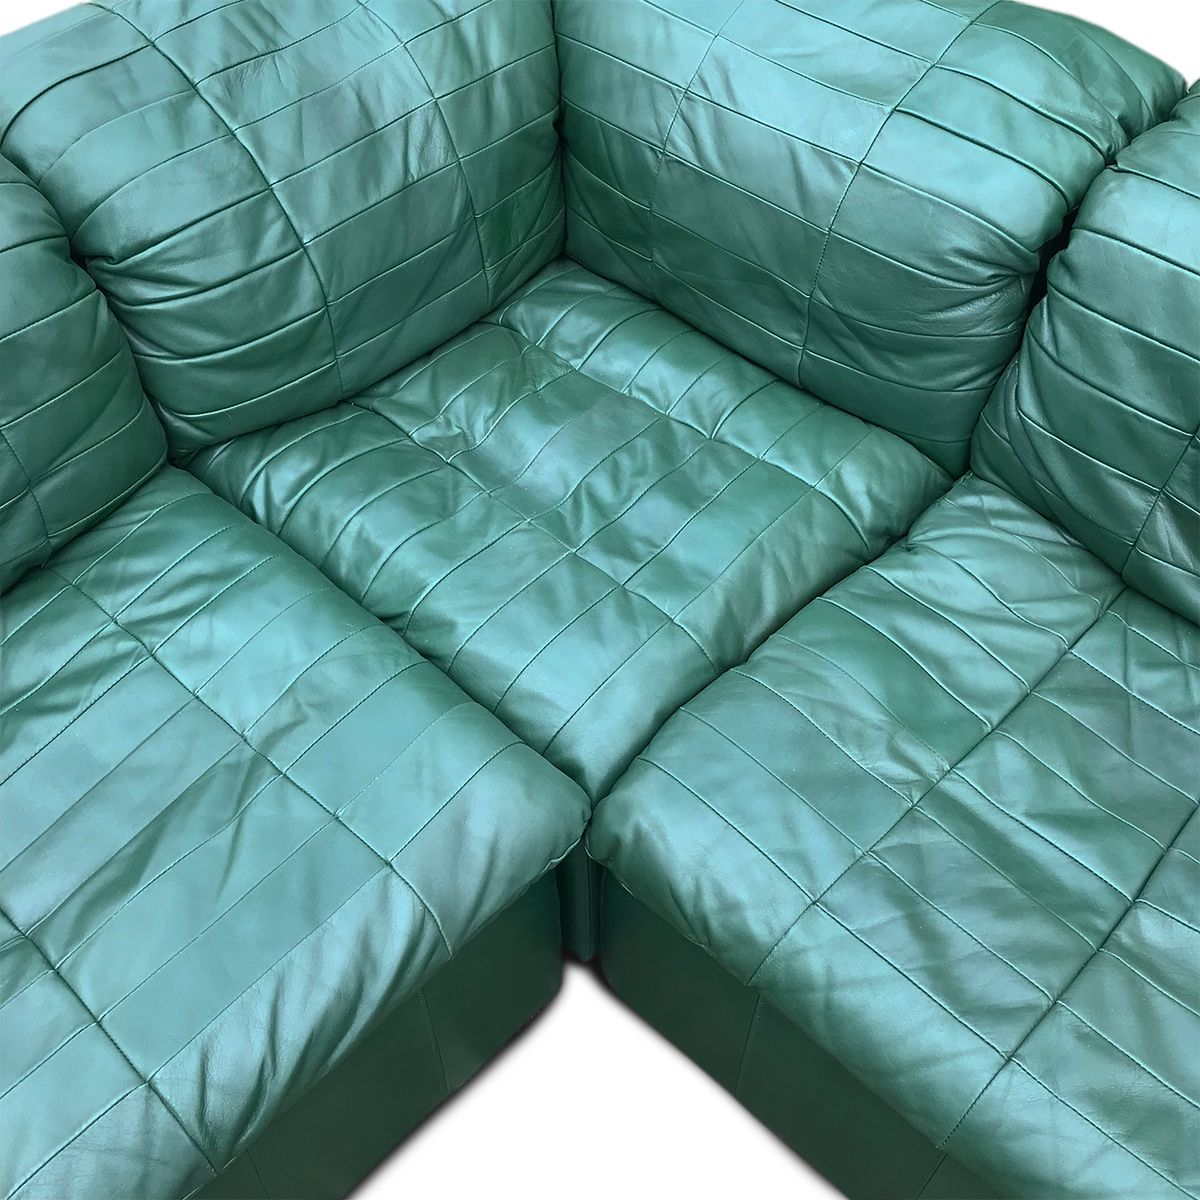 Mid-Century Modular Sofa With Green Leather Patchwork From